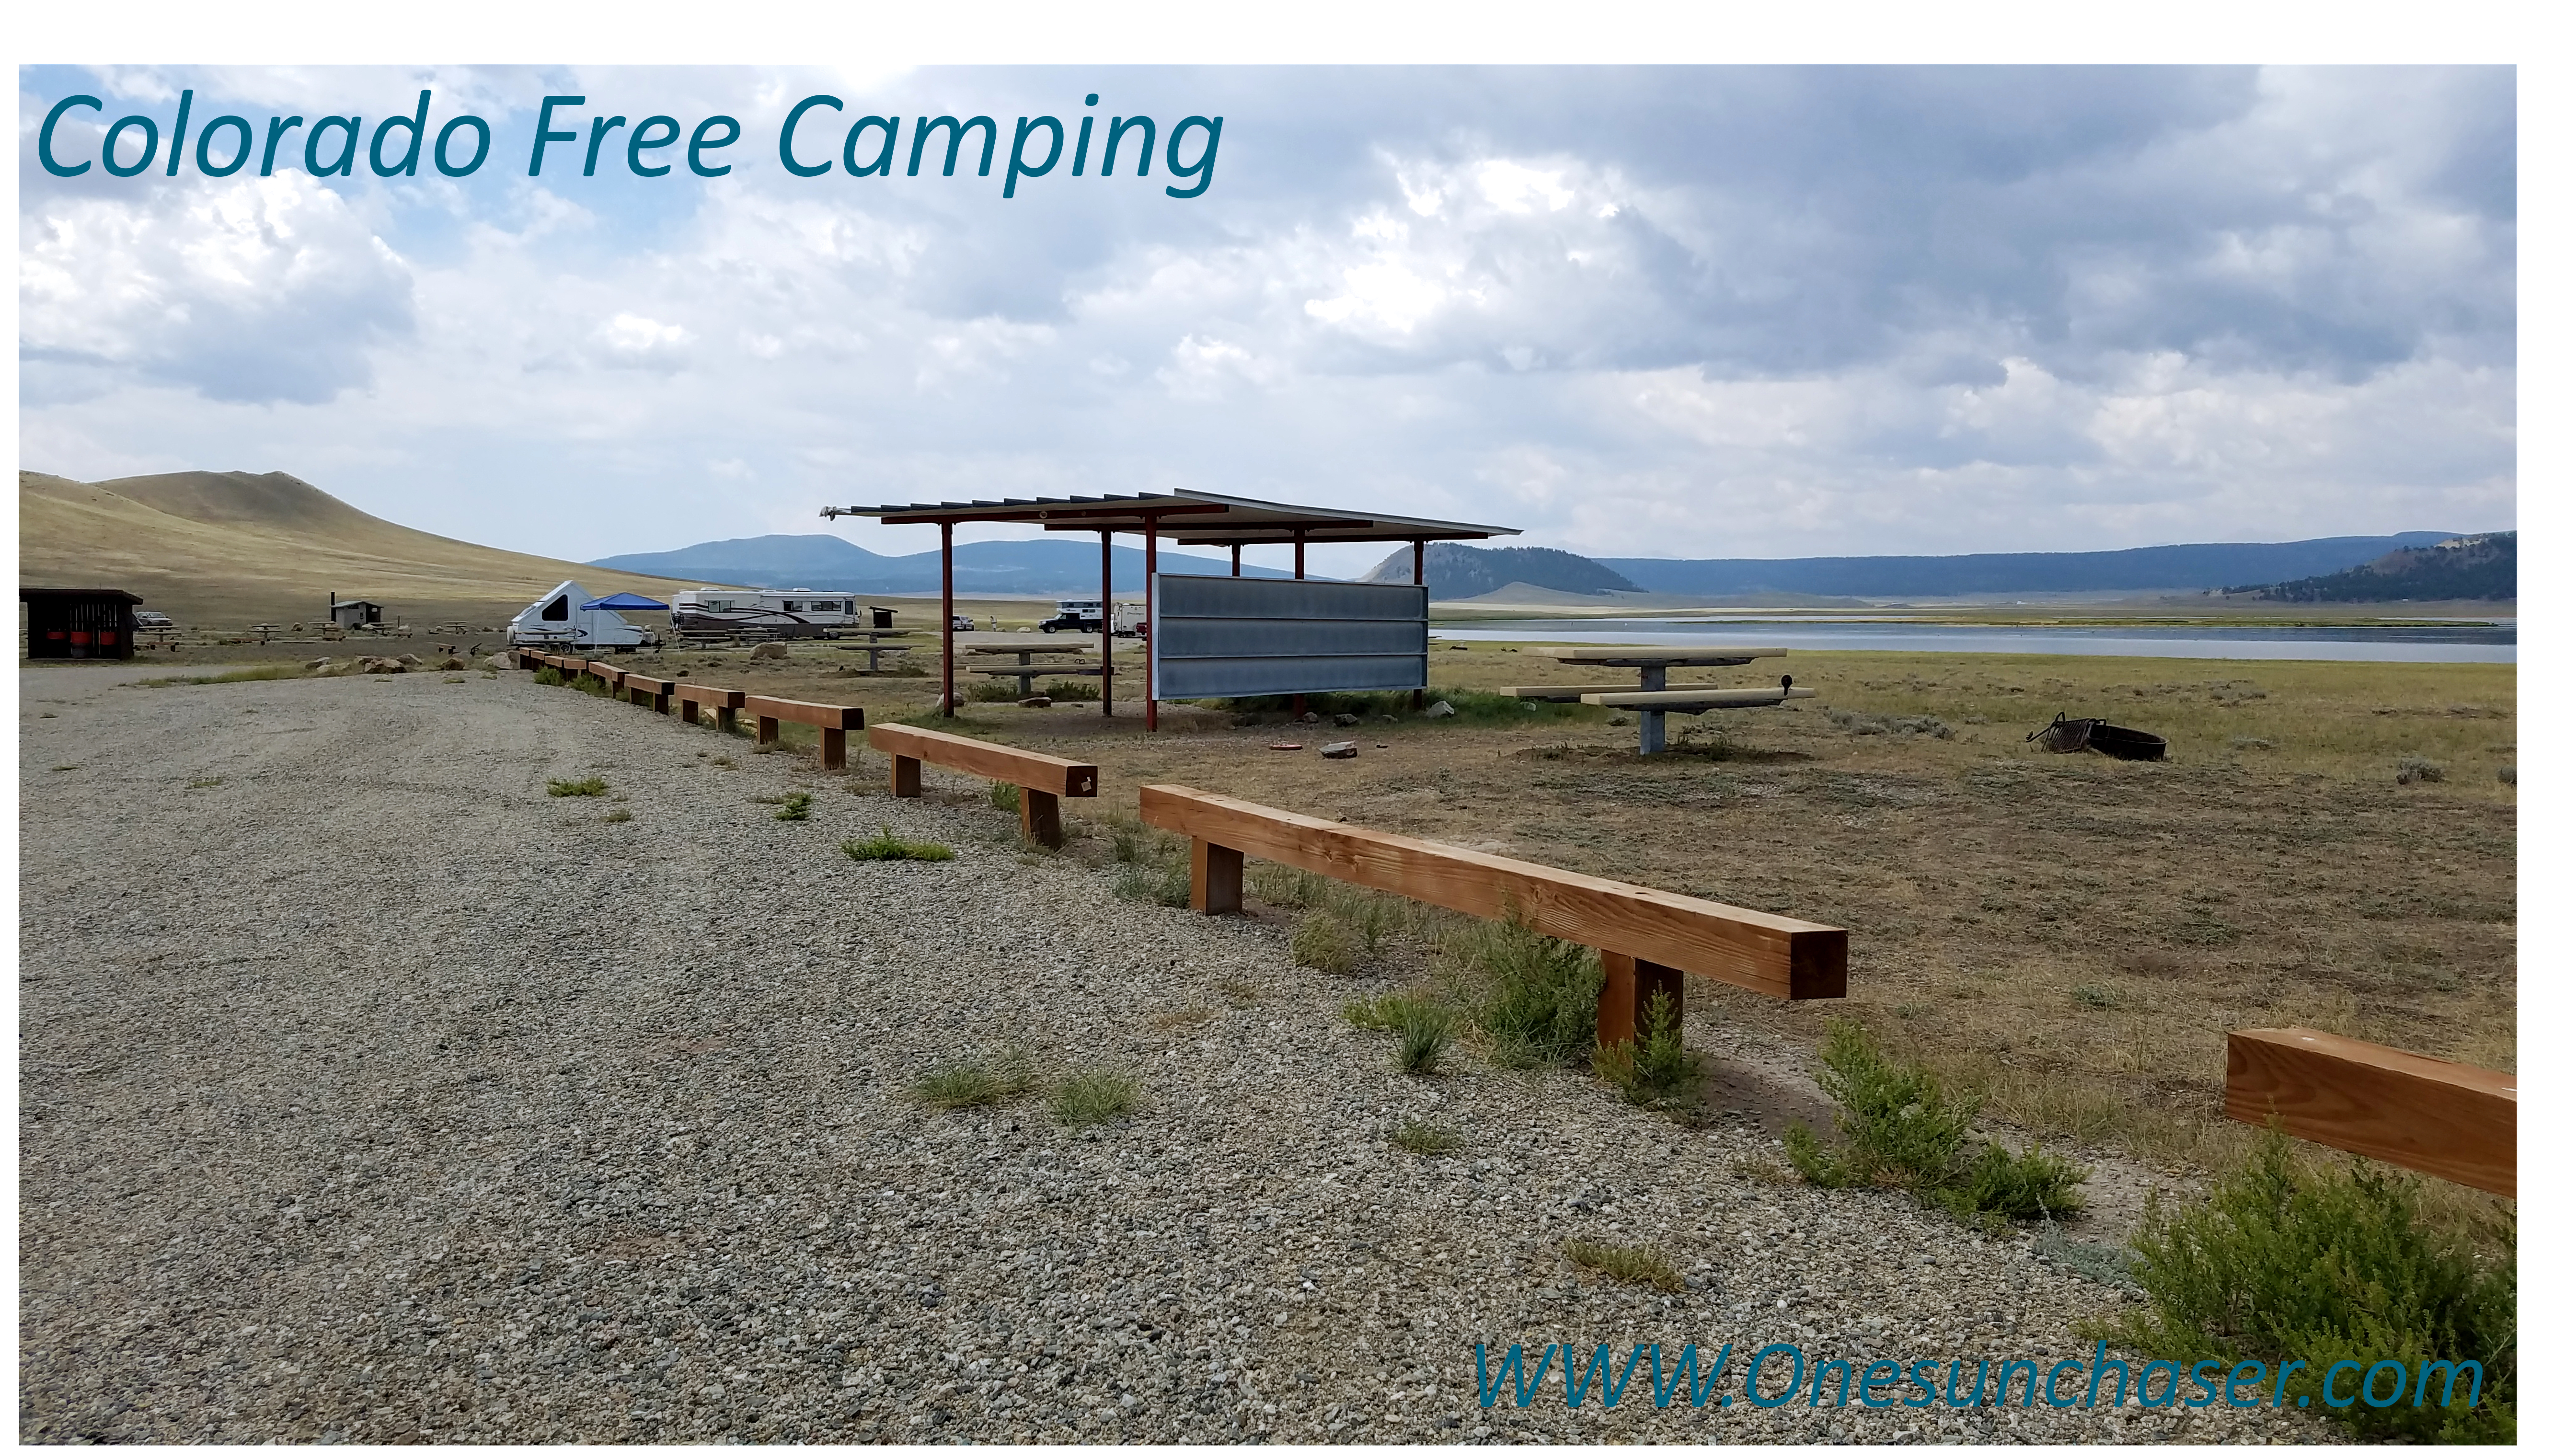 Parking lot and free campsites at Lake Antero free campground